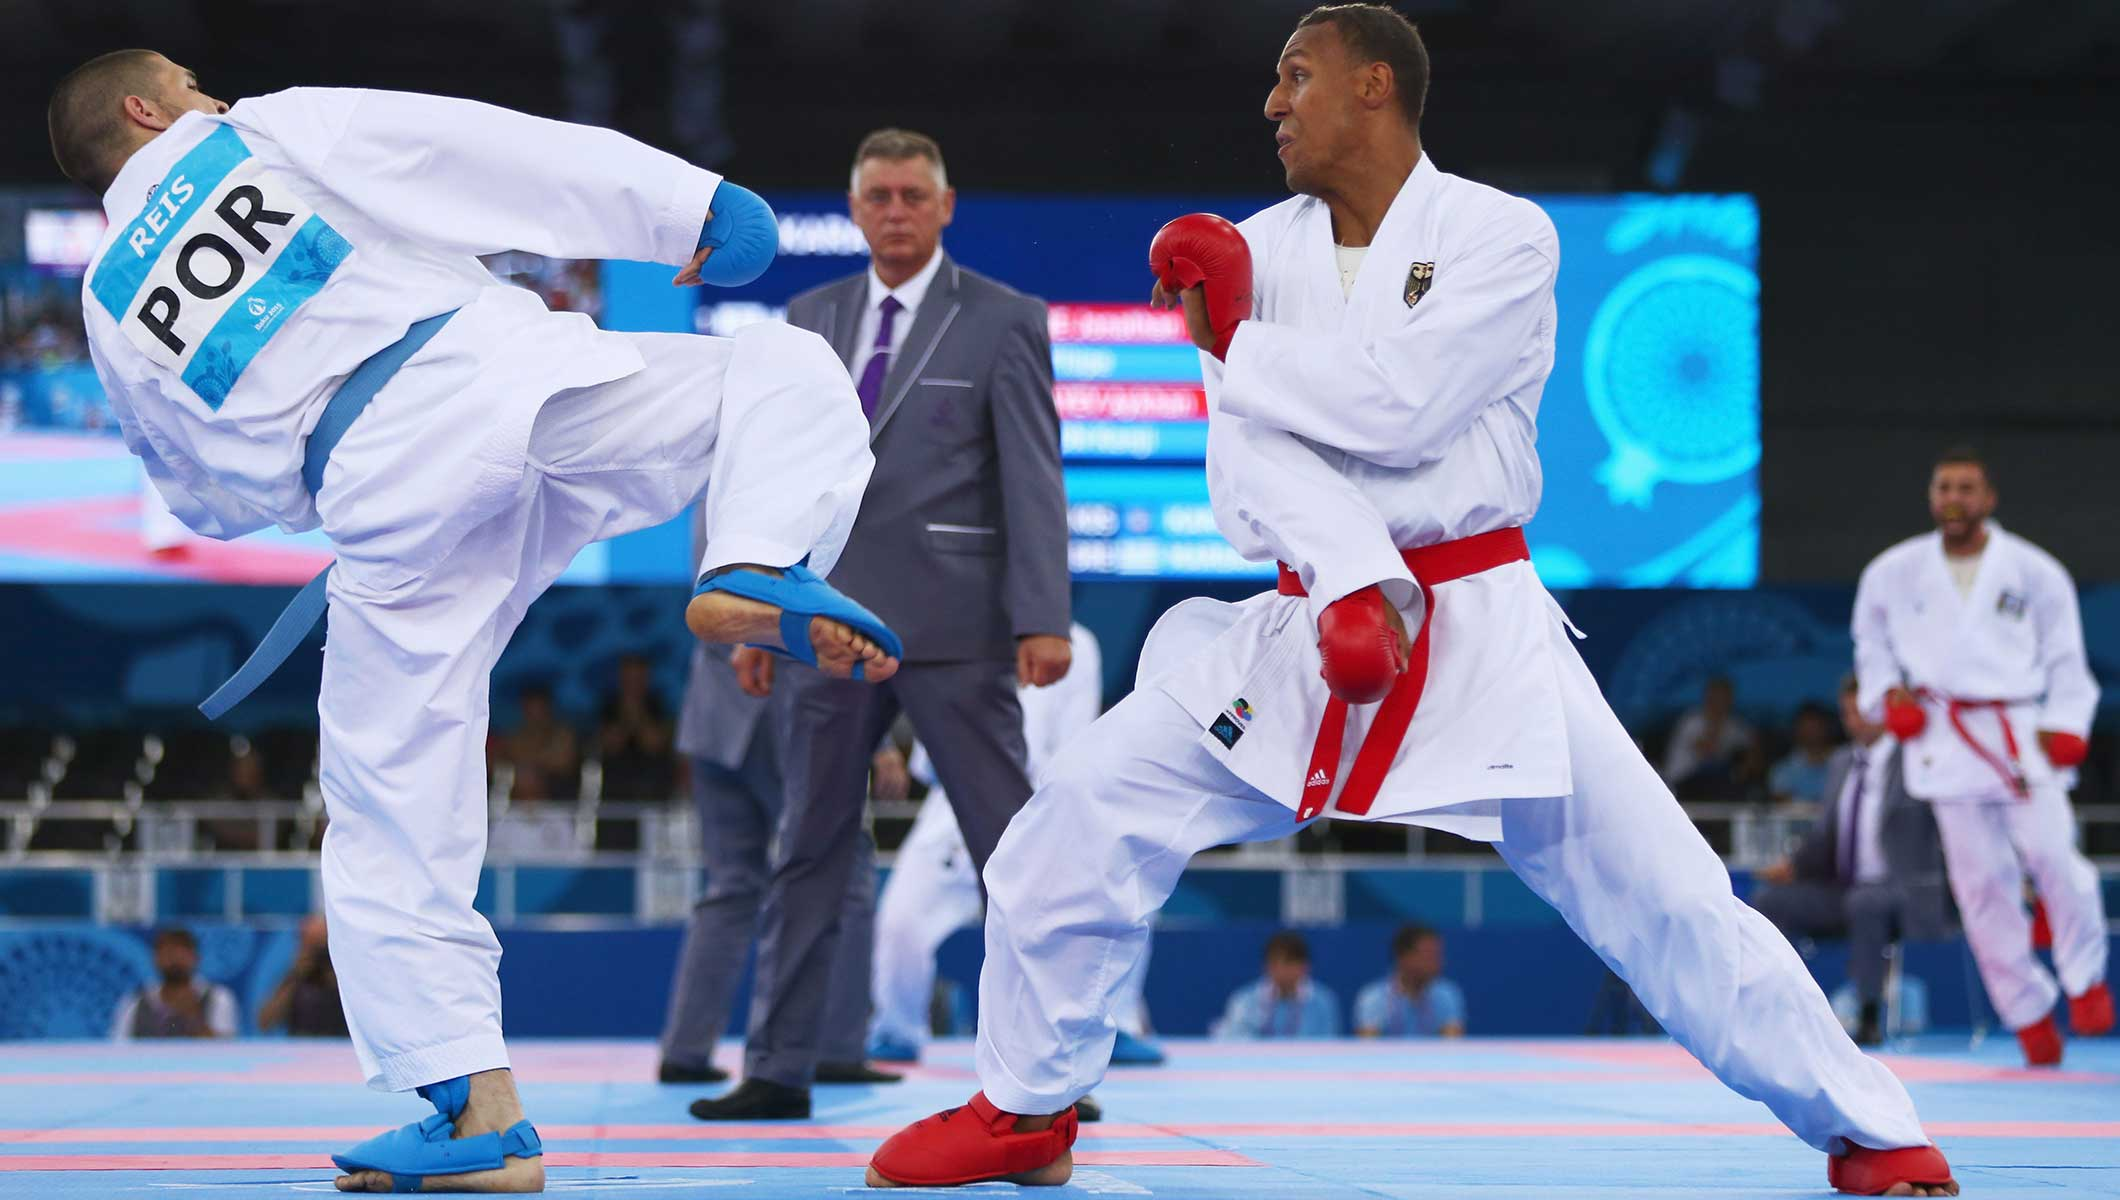 Image result for Karate in the olympics